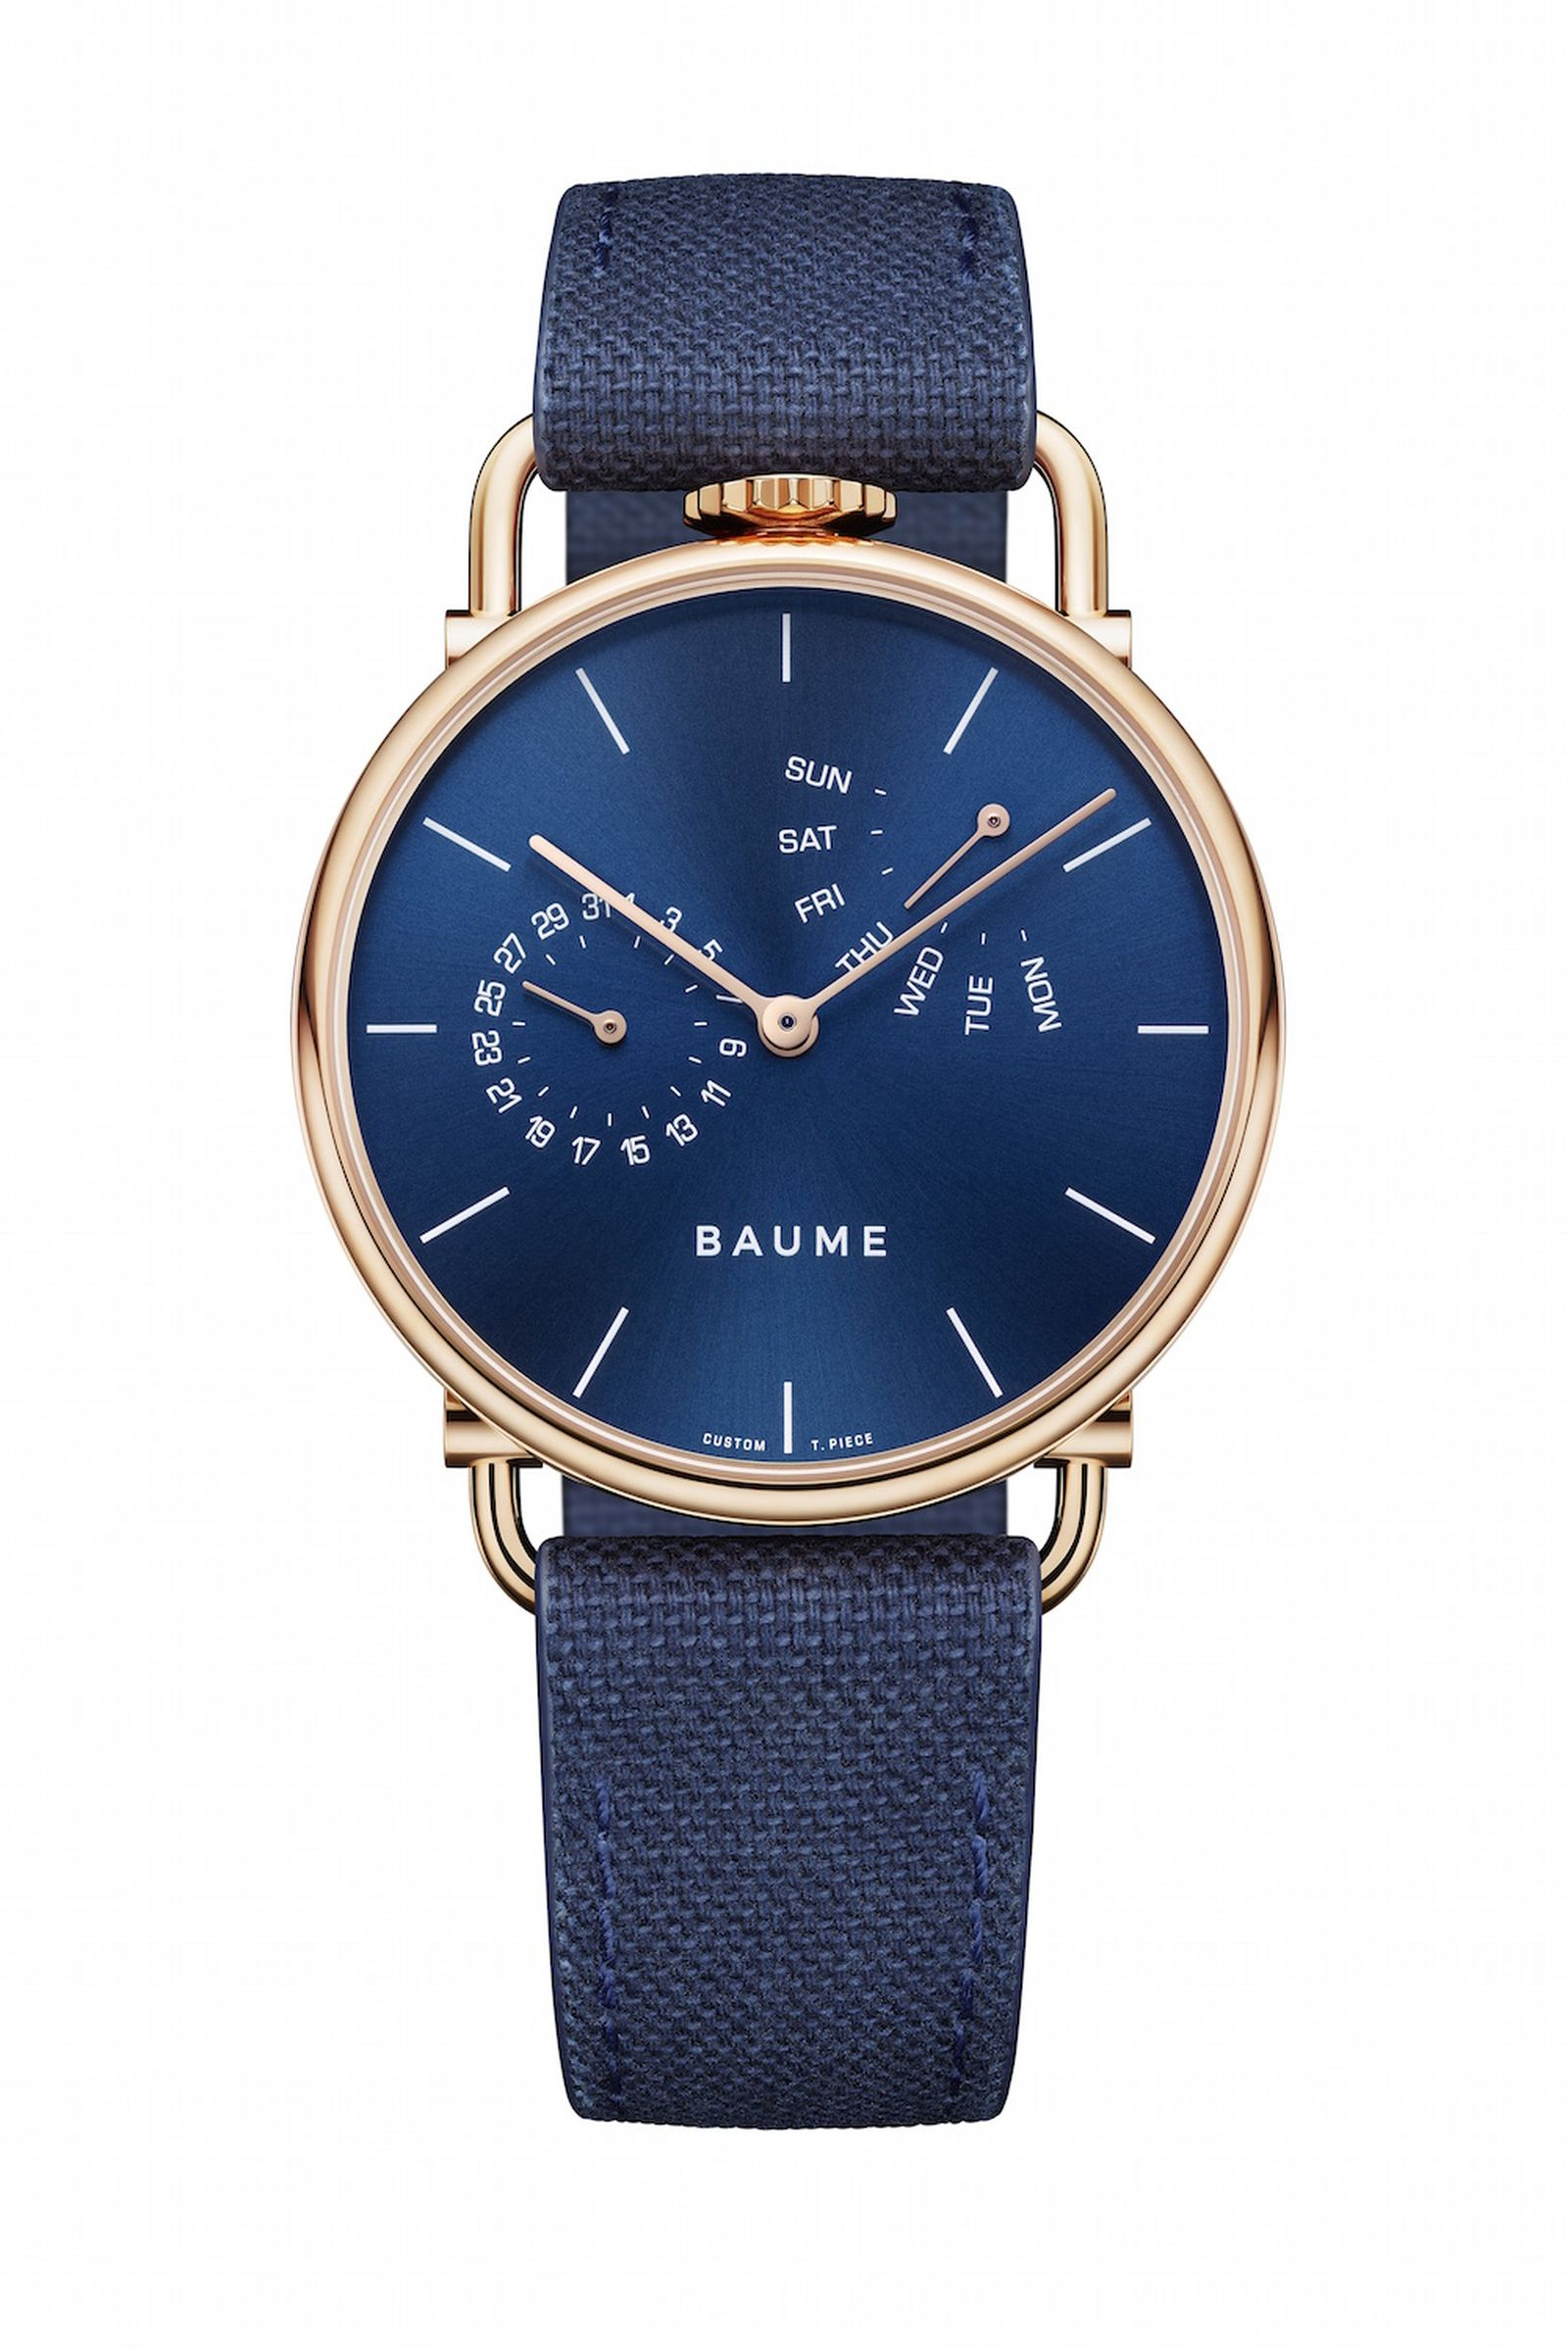 baume-sustainable-watch-collection-09